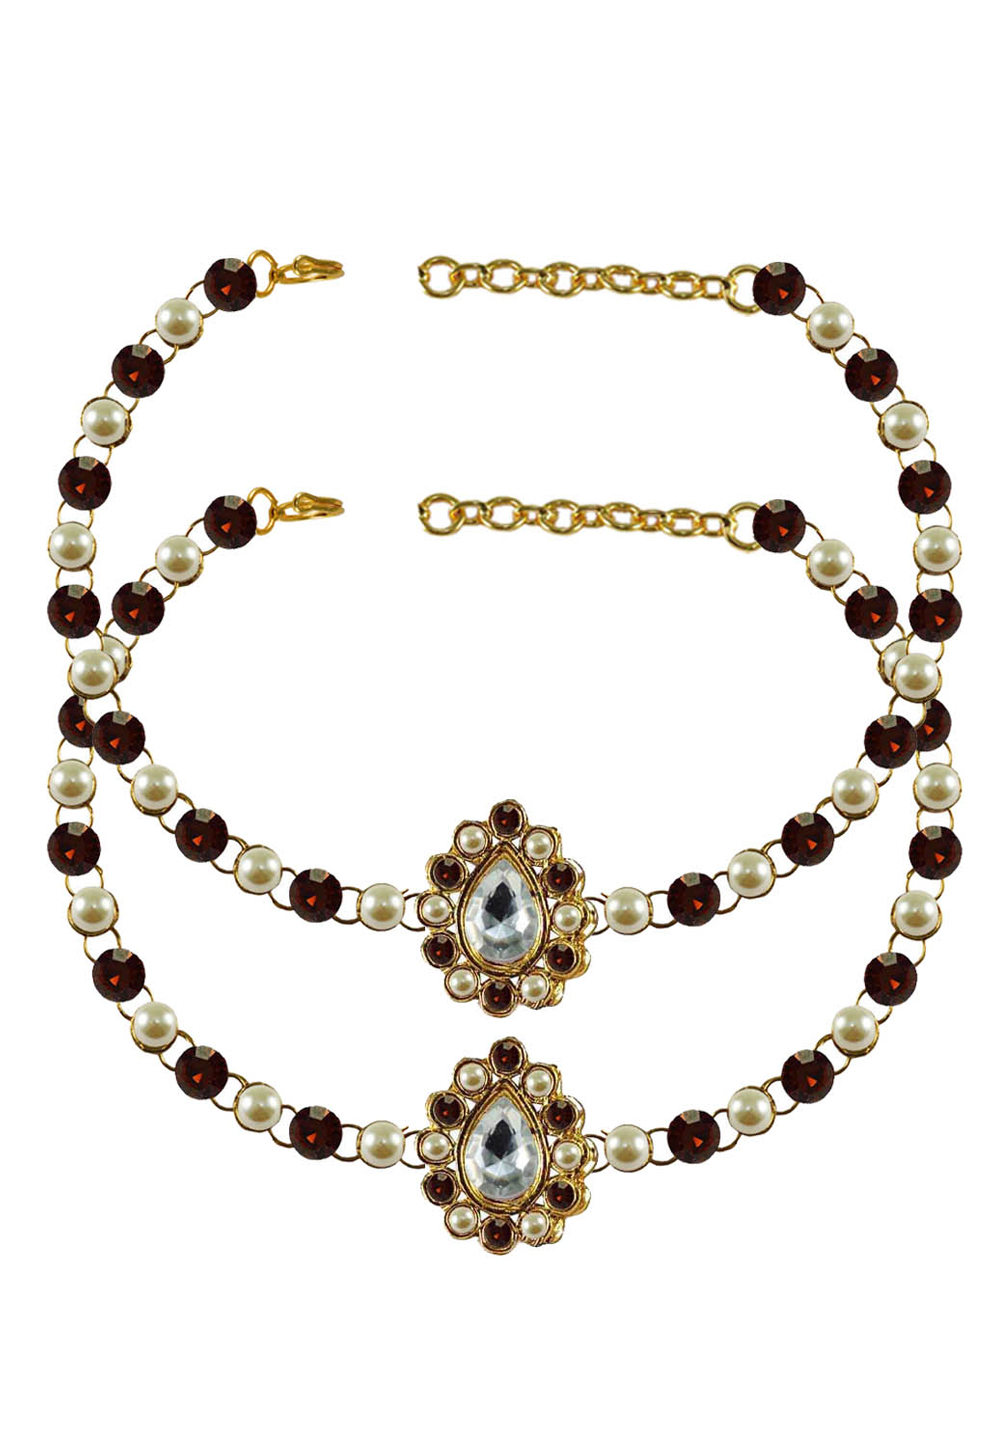 Maroon Brass Gold Plated Anklets 171350